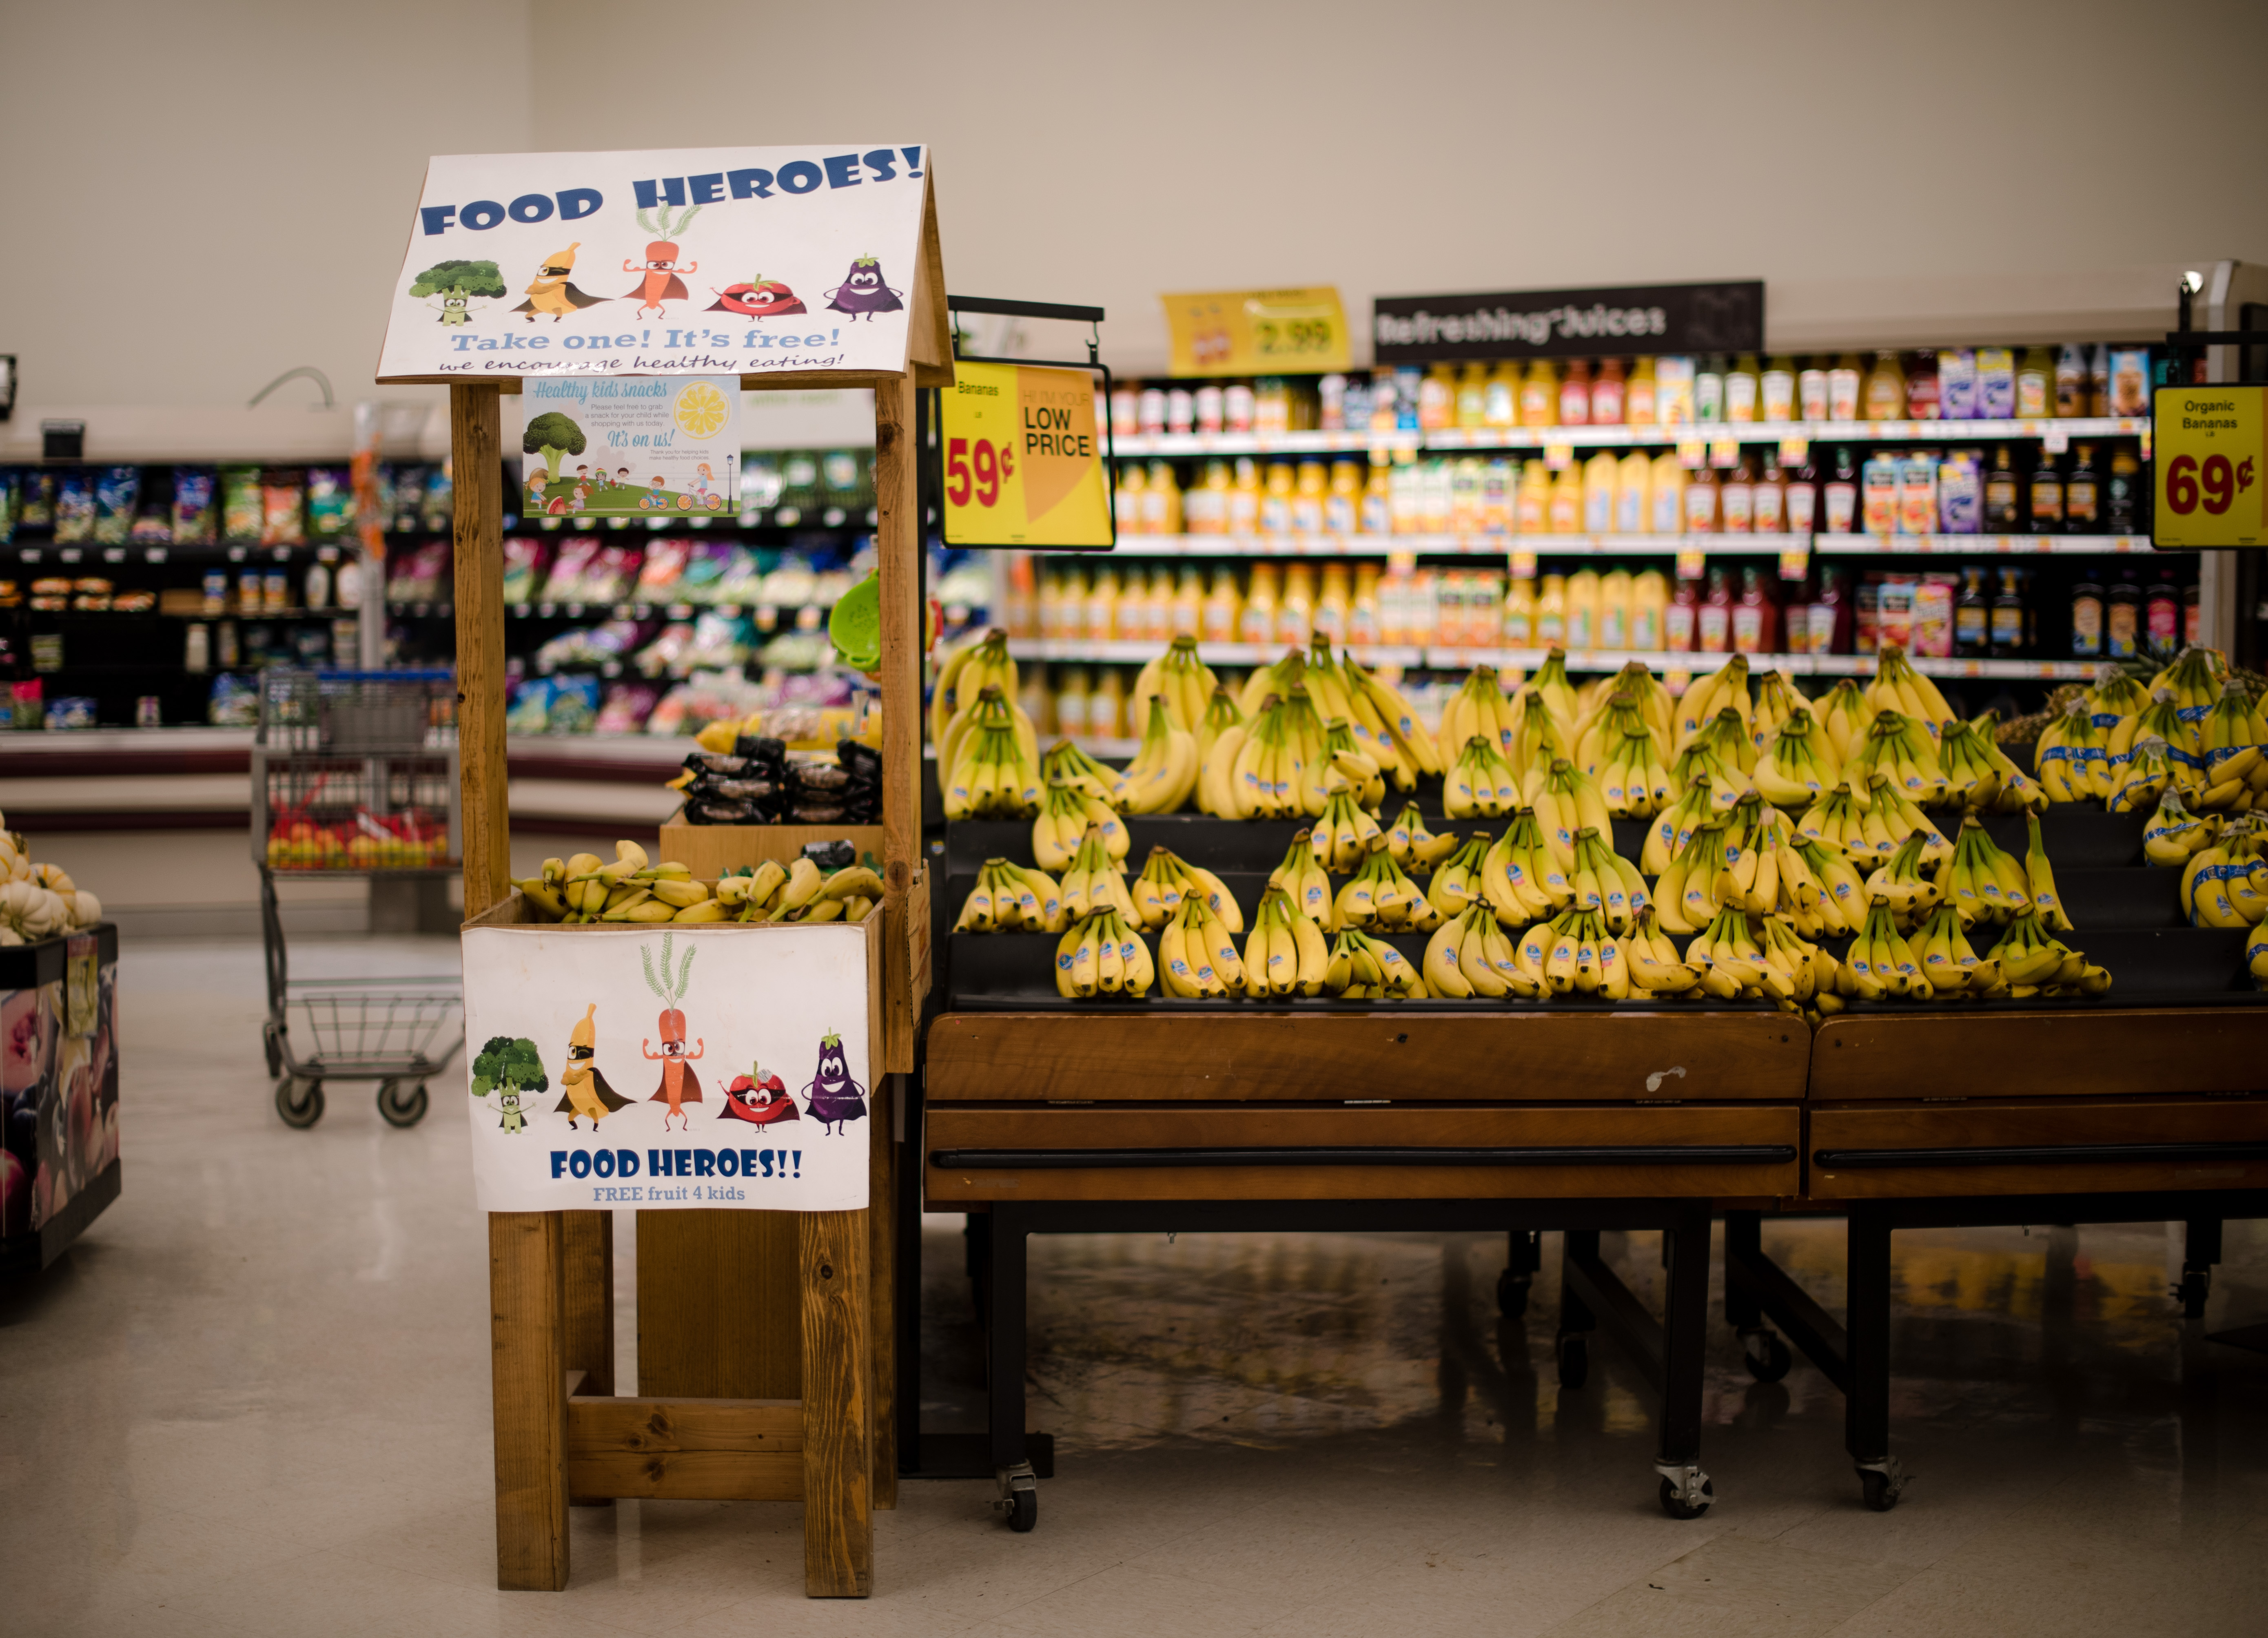 A permanent fruit stand was placed in City Market Grocery in Shiprock, New Mexico